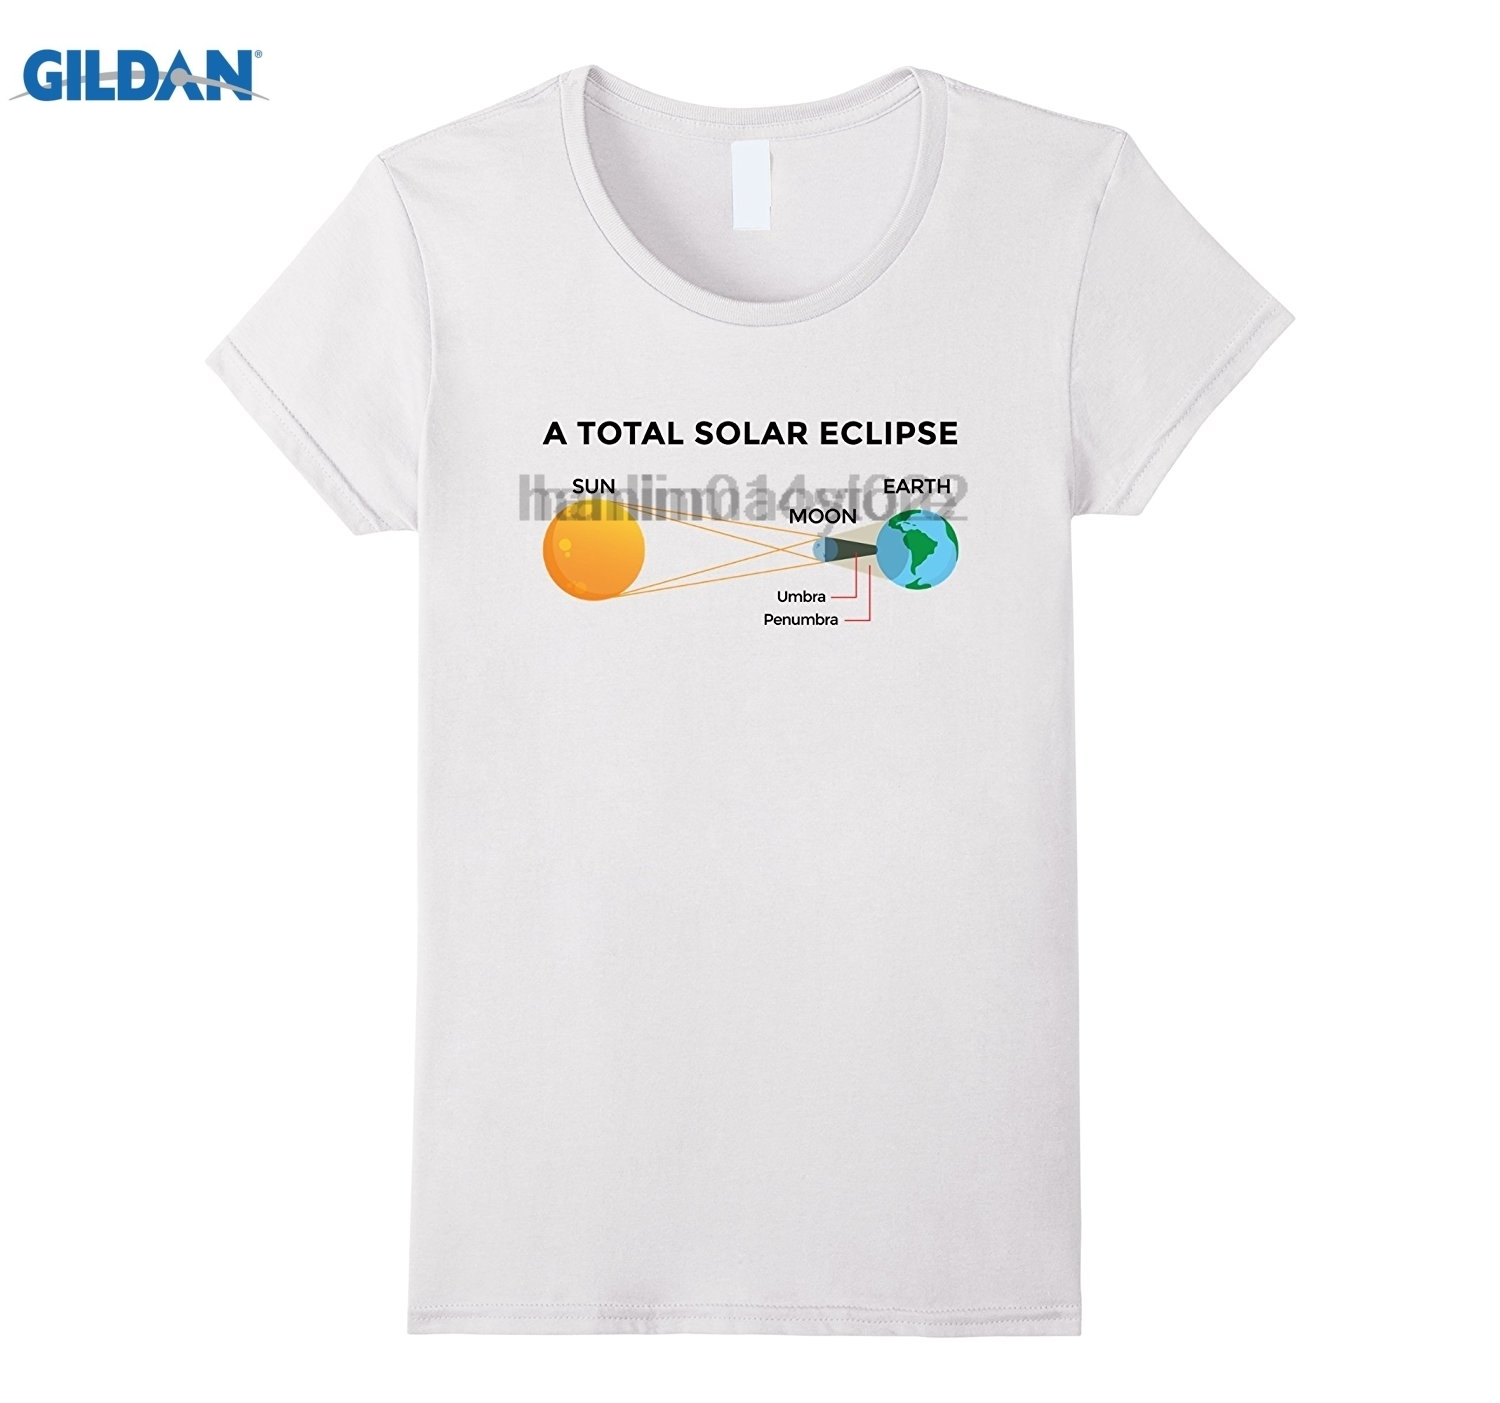 hight resolution of gildan total solar eclipse diagram t shirt in t shirts from men s clothing on aliexpress com alibaba group